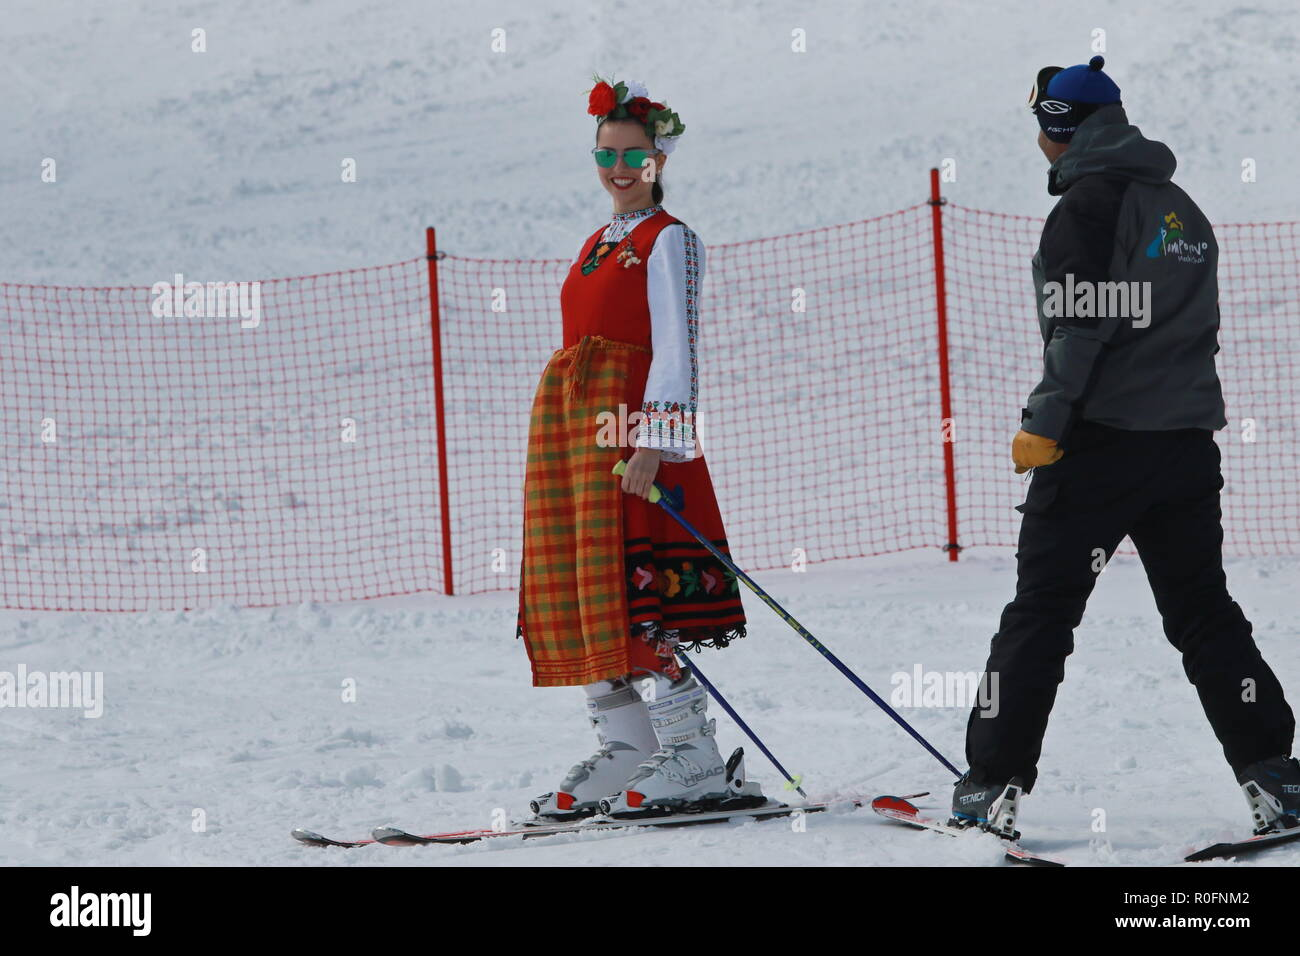 Skiing with Bulgarian flags at Pamporovo ski resort, Bulgaria. People dressed with traditional Bulgarian clothes skiing with the national flag. - Stock Image